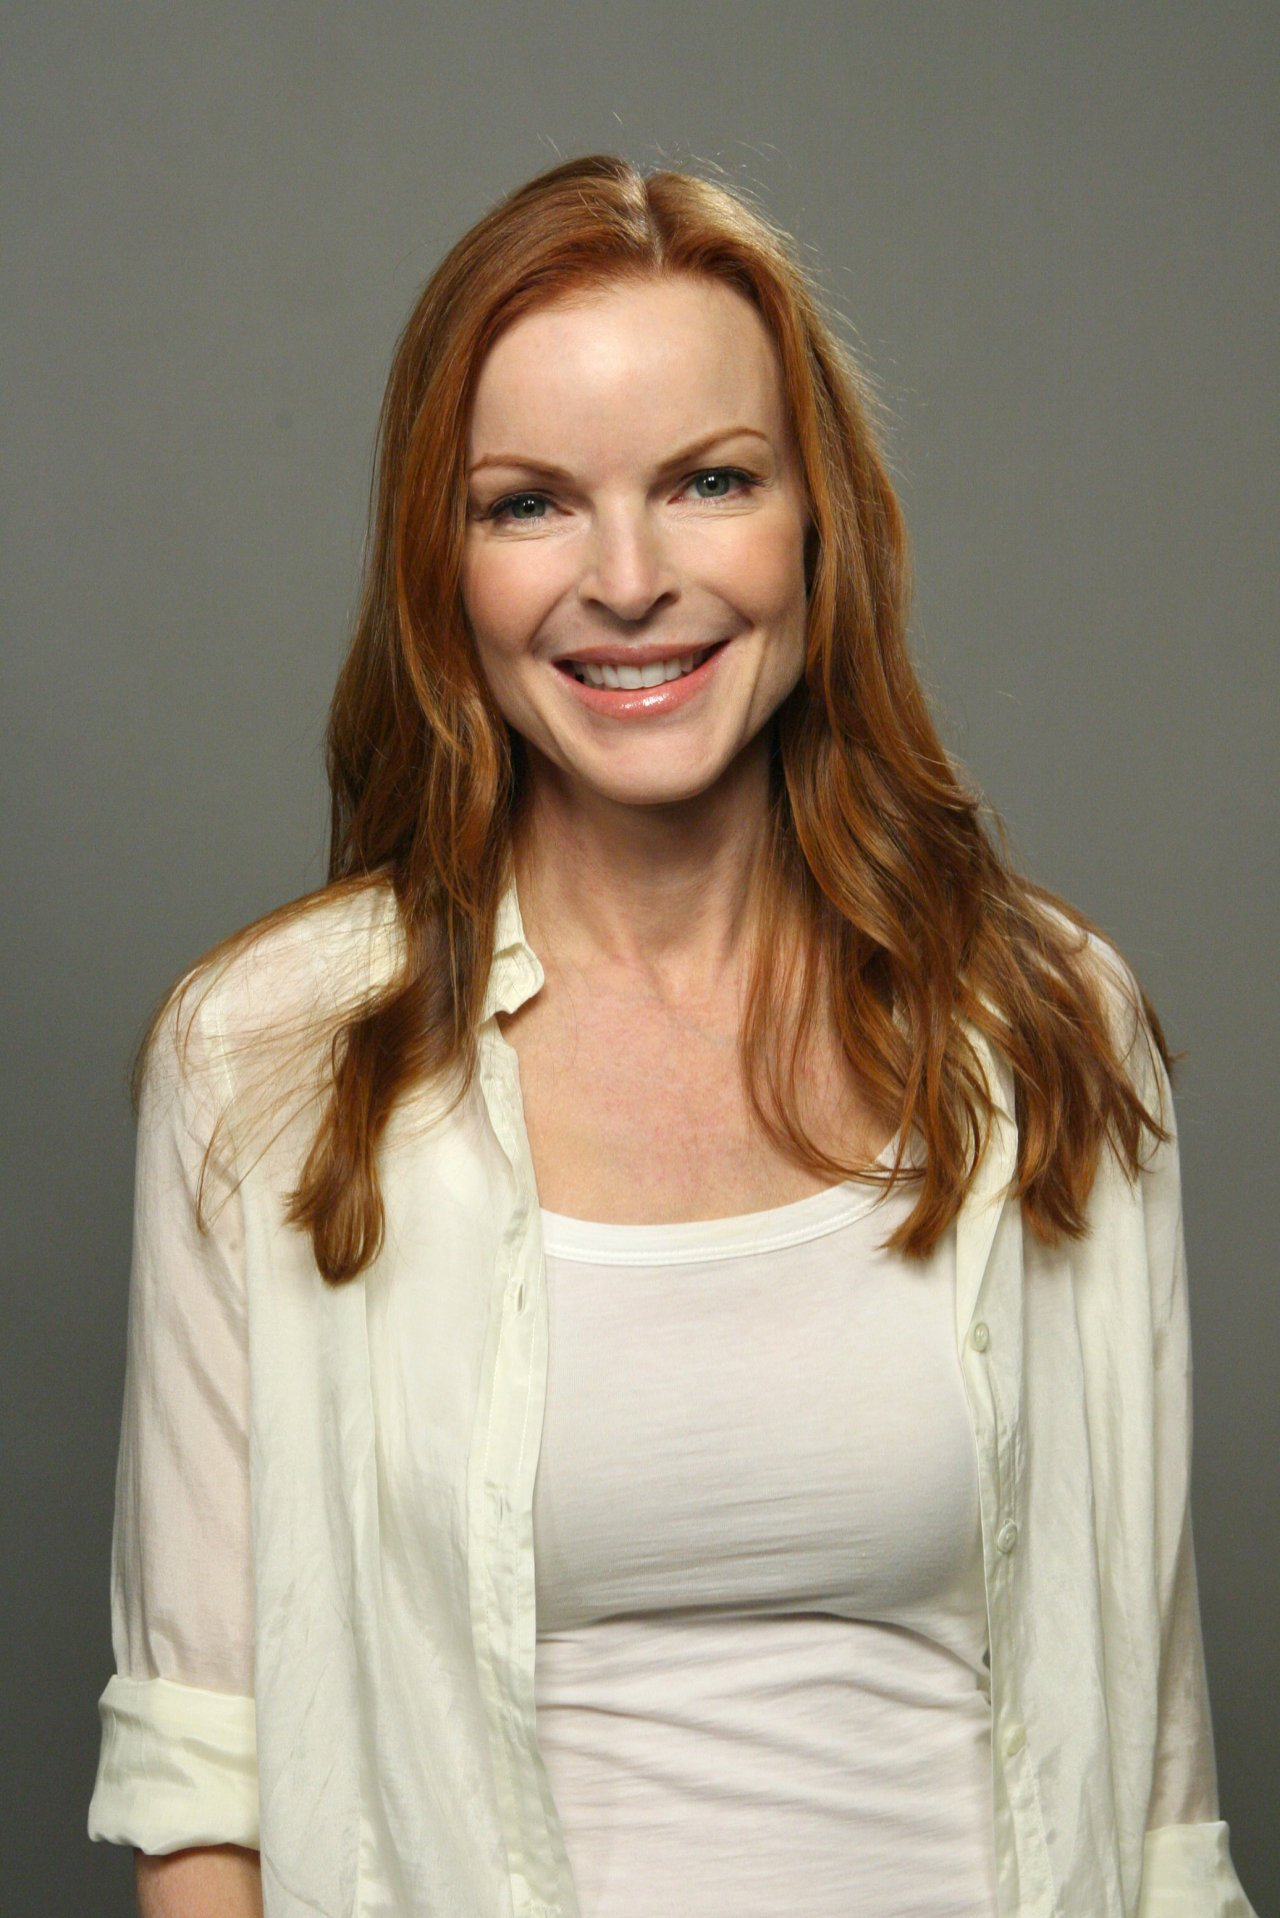 Fotos Marcia Cross naked (76 foto and video), Topless, Paparazzi, Instagram, in bikini 2006